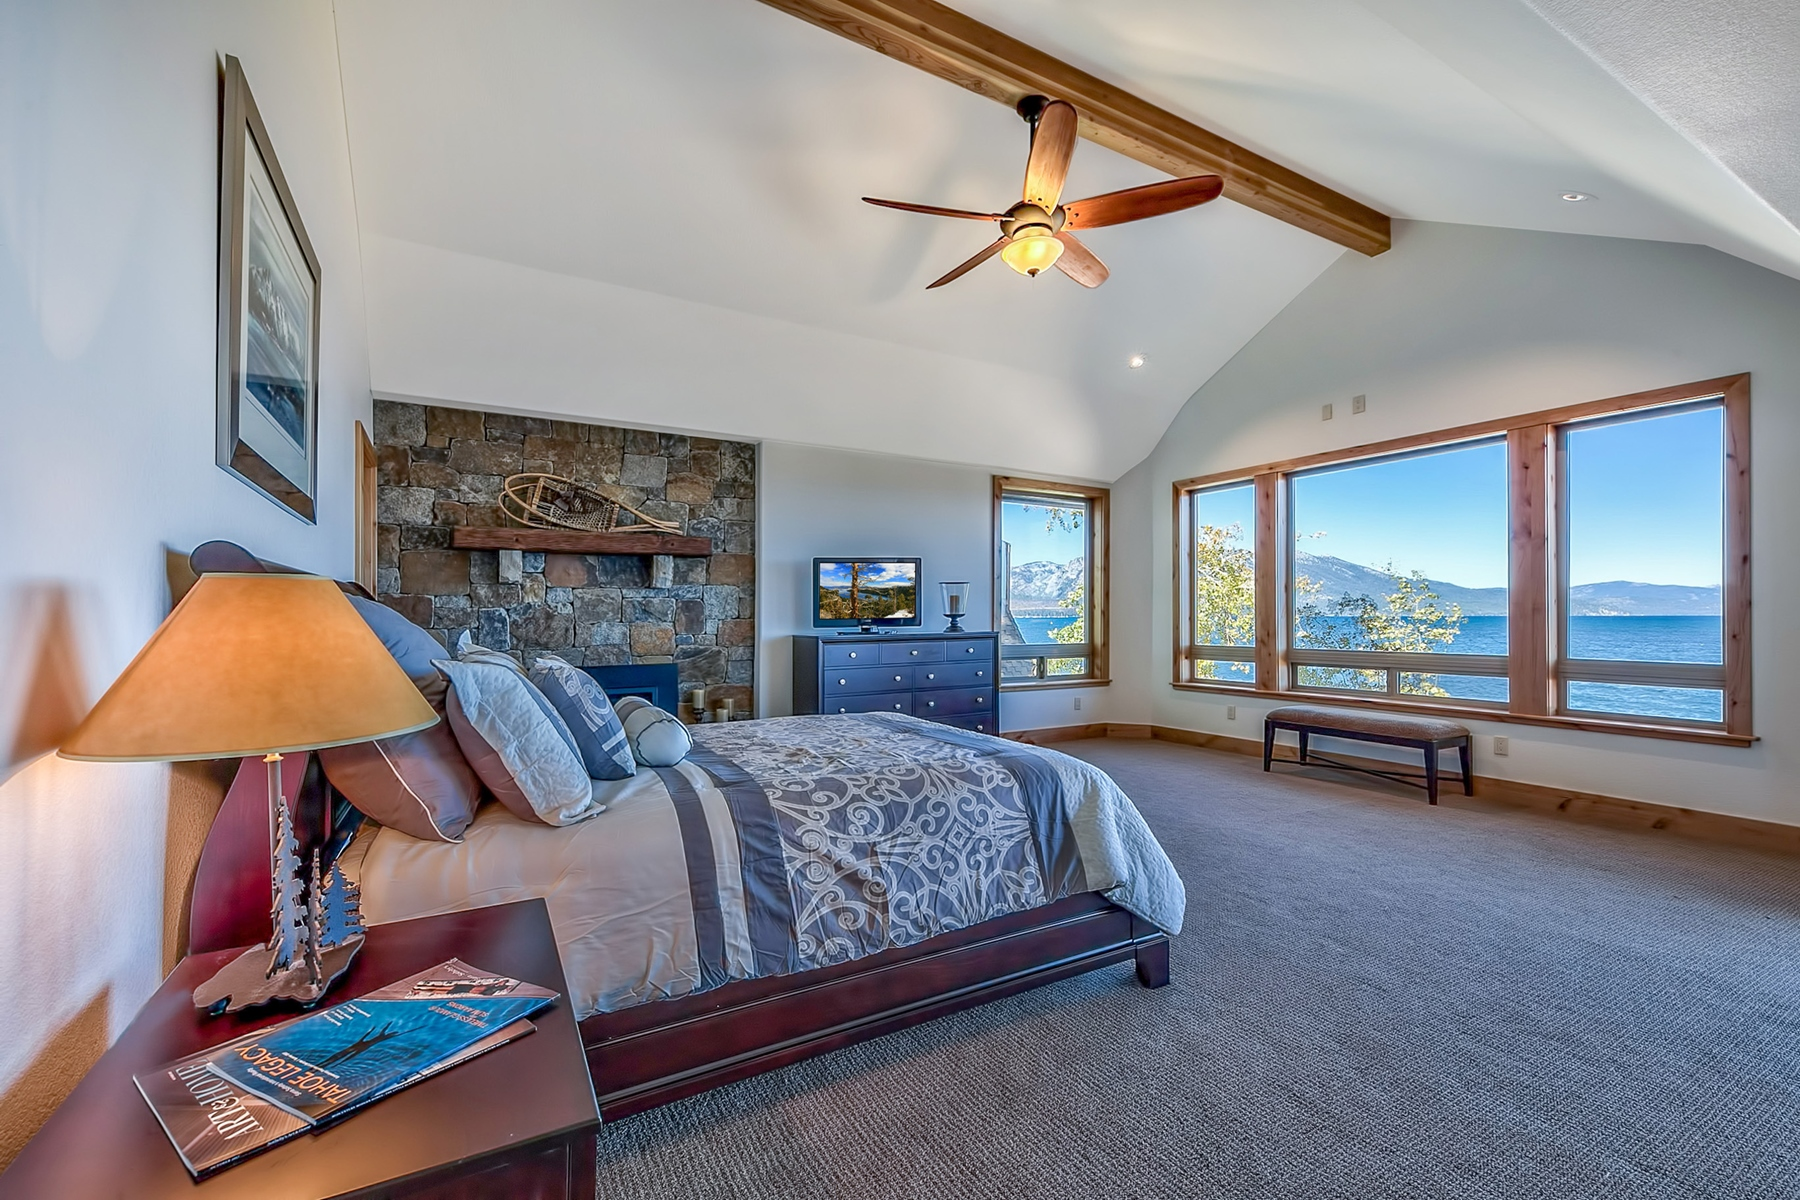 Additional photo for property listing at 319 Beach Drive South Lake Tahoe California, 96150 319 Beach Drive South Lake Tahoe, California 96150 United States